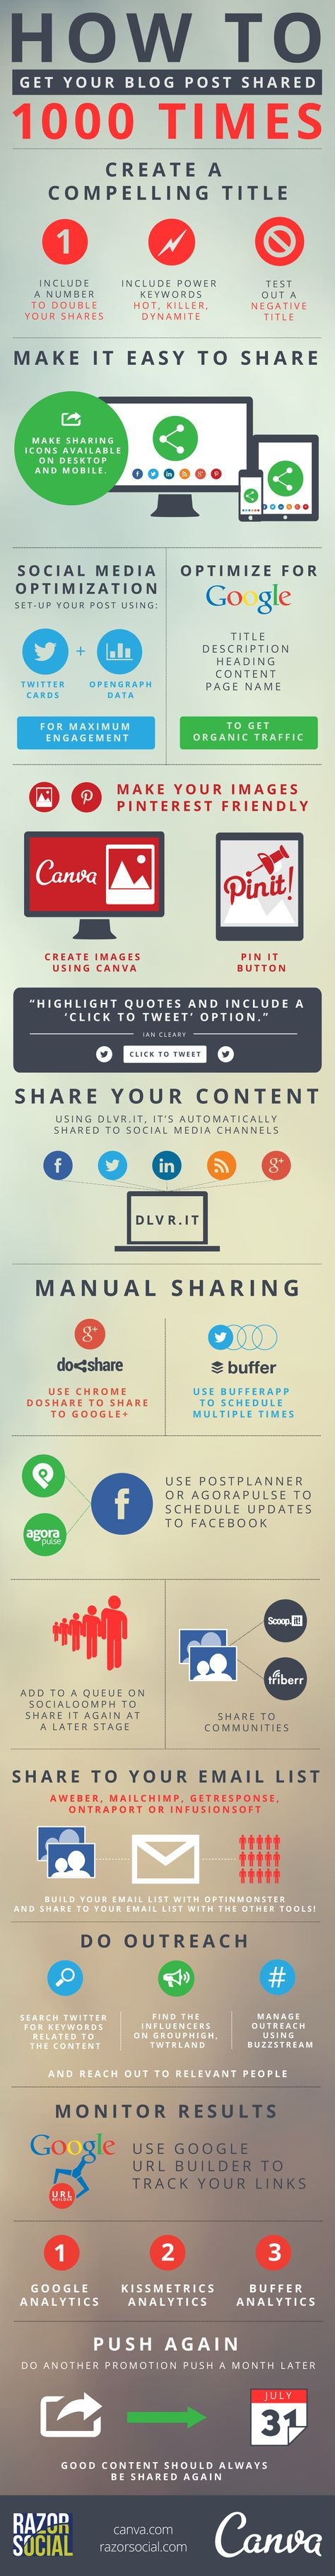 How to Promote Your Blog Content to Get 1,000 Social Media Shares - infographic